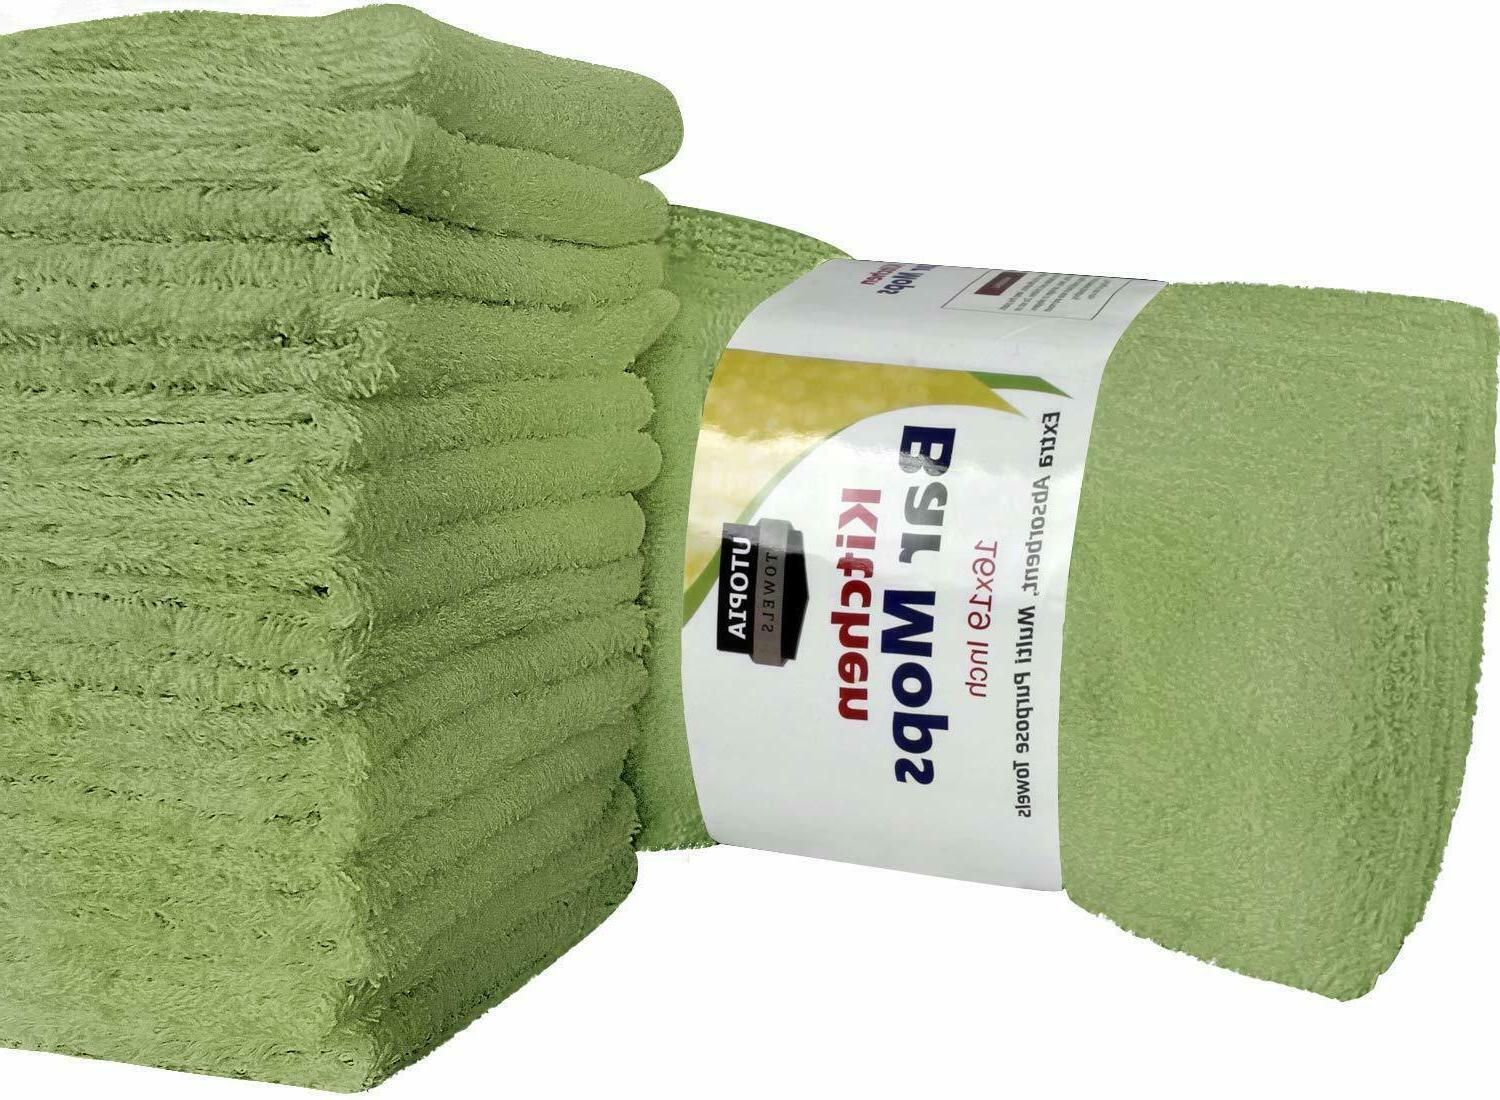 12 Towels Cleaning Cotton Utopia